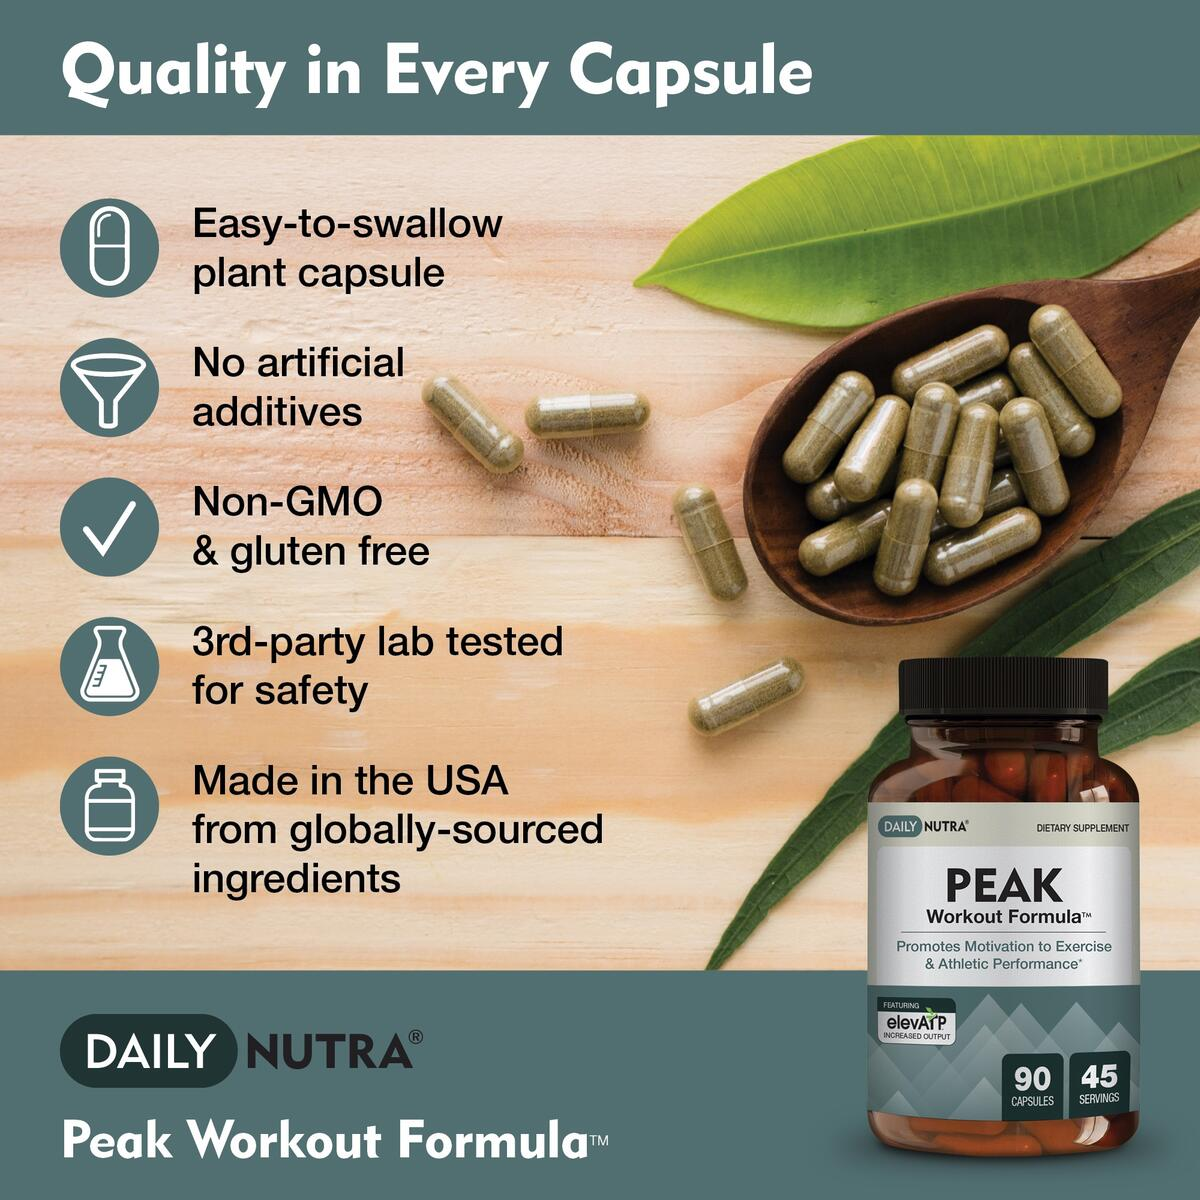 Peak Workout Formula by DailyNutra - Improved Motivation and Exercise Output | Pre-Workout and Recovery Supplement Featuring ActiGin, elevATP, Yerba Mate, Beet Root (90 Capsules)